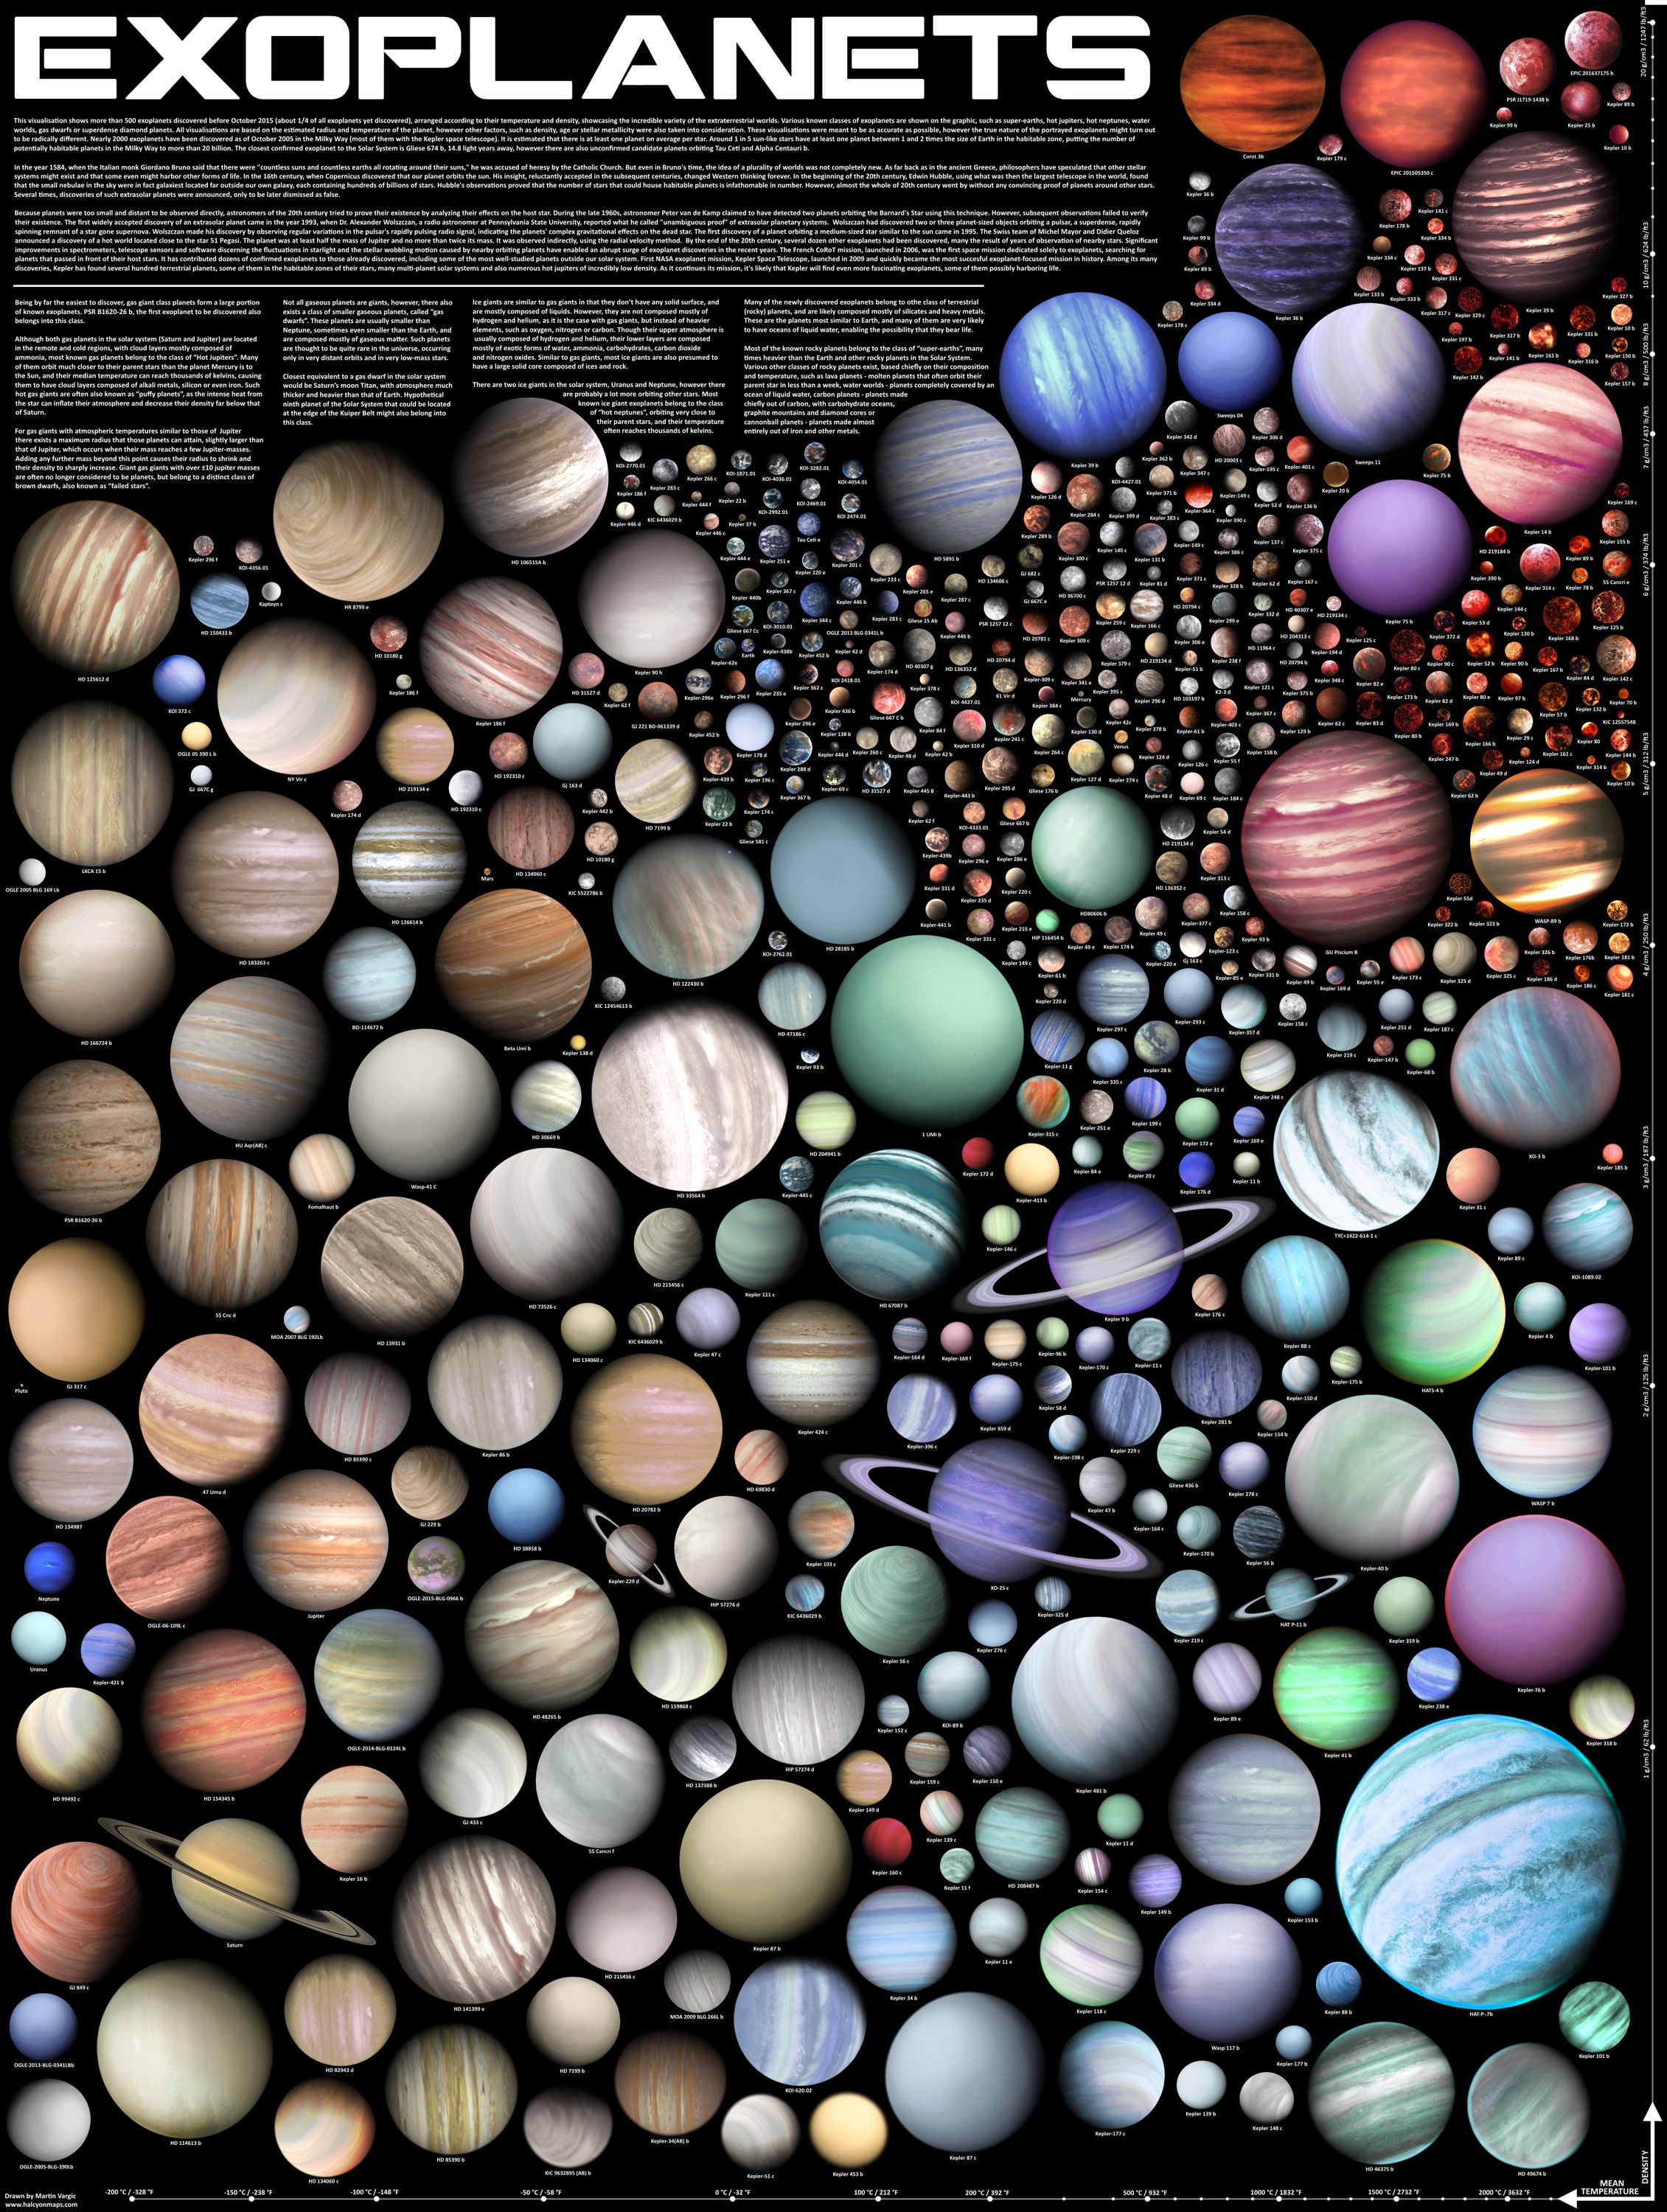 500 exoplanets_by_jaysimons-d9dv6th.jpg